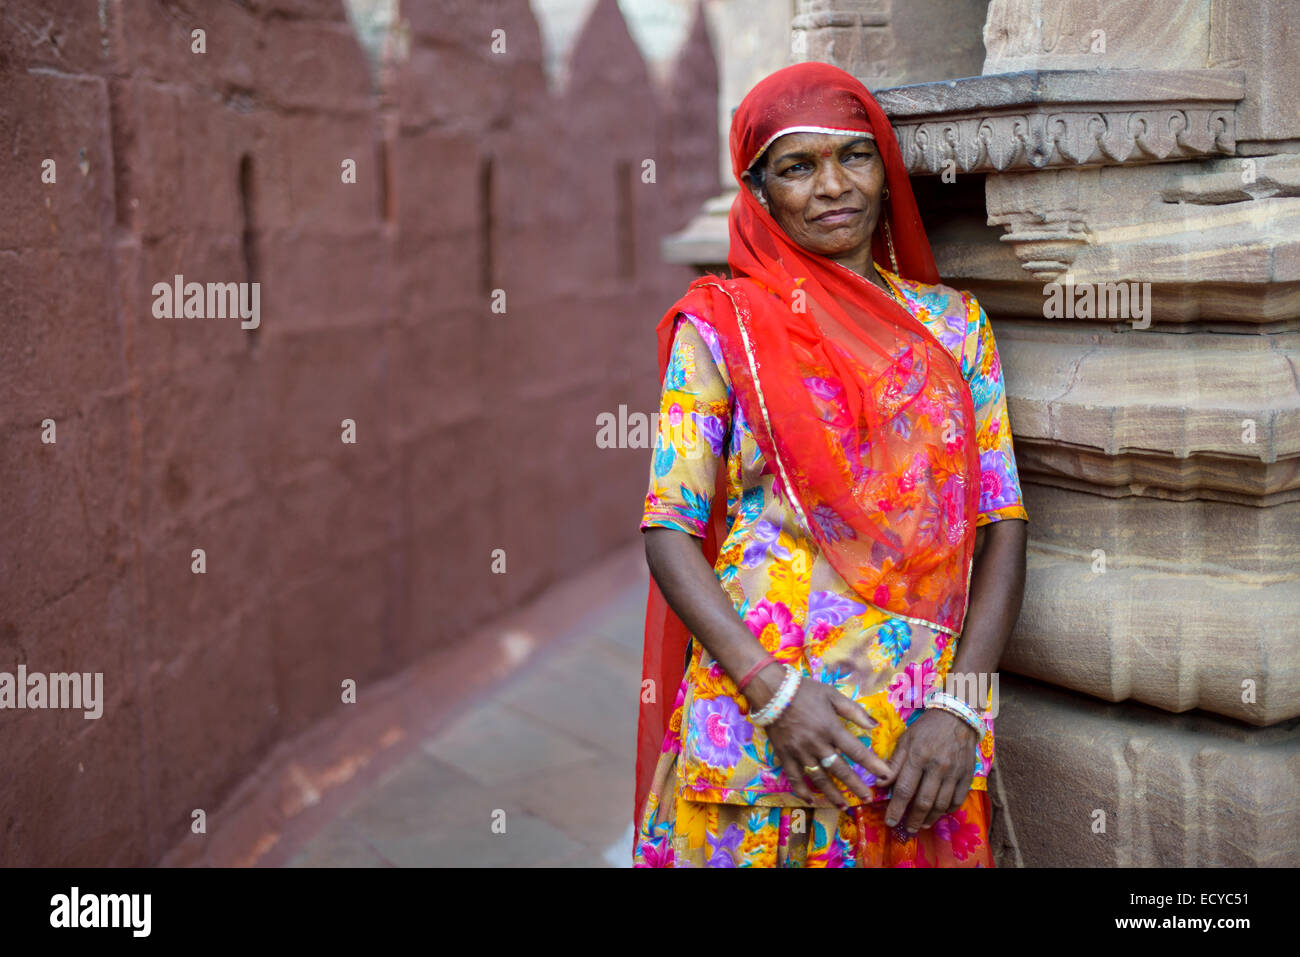 Rajasthani woman in Jodhpur's fort, India Stock Photo